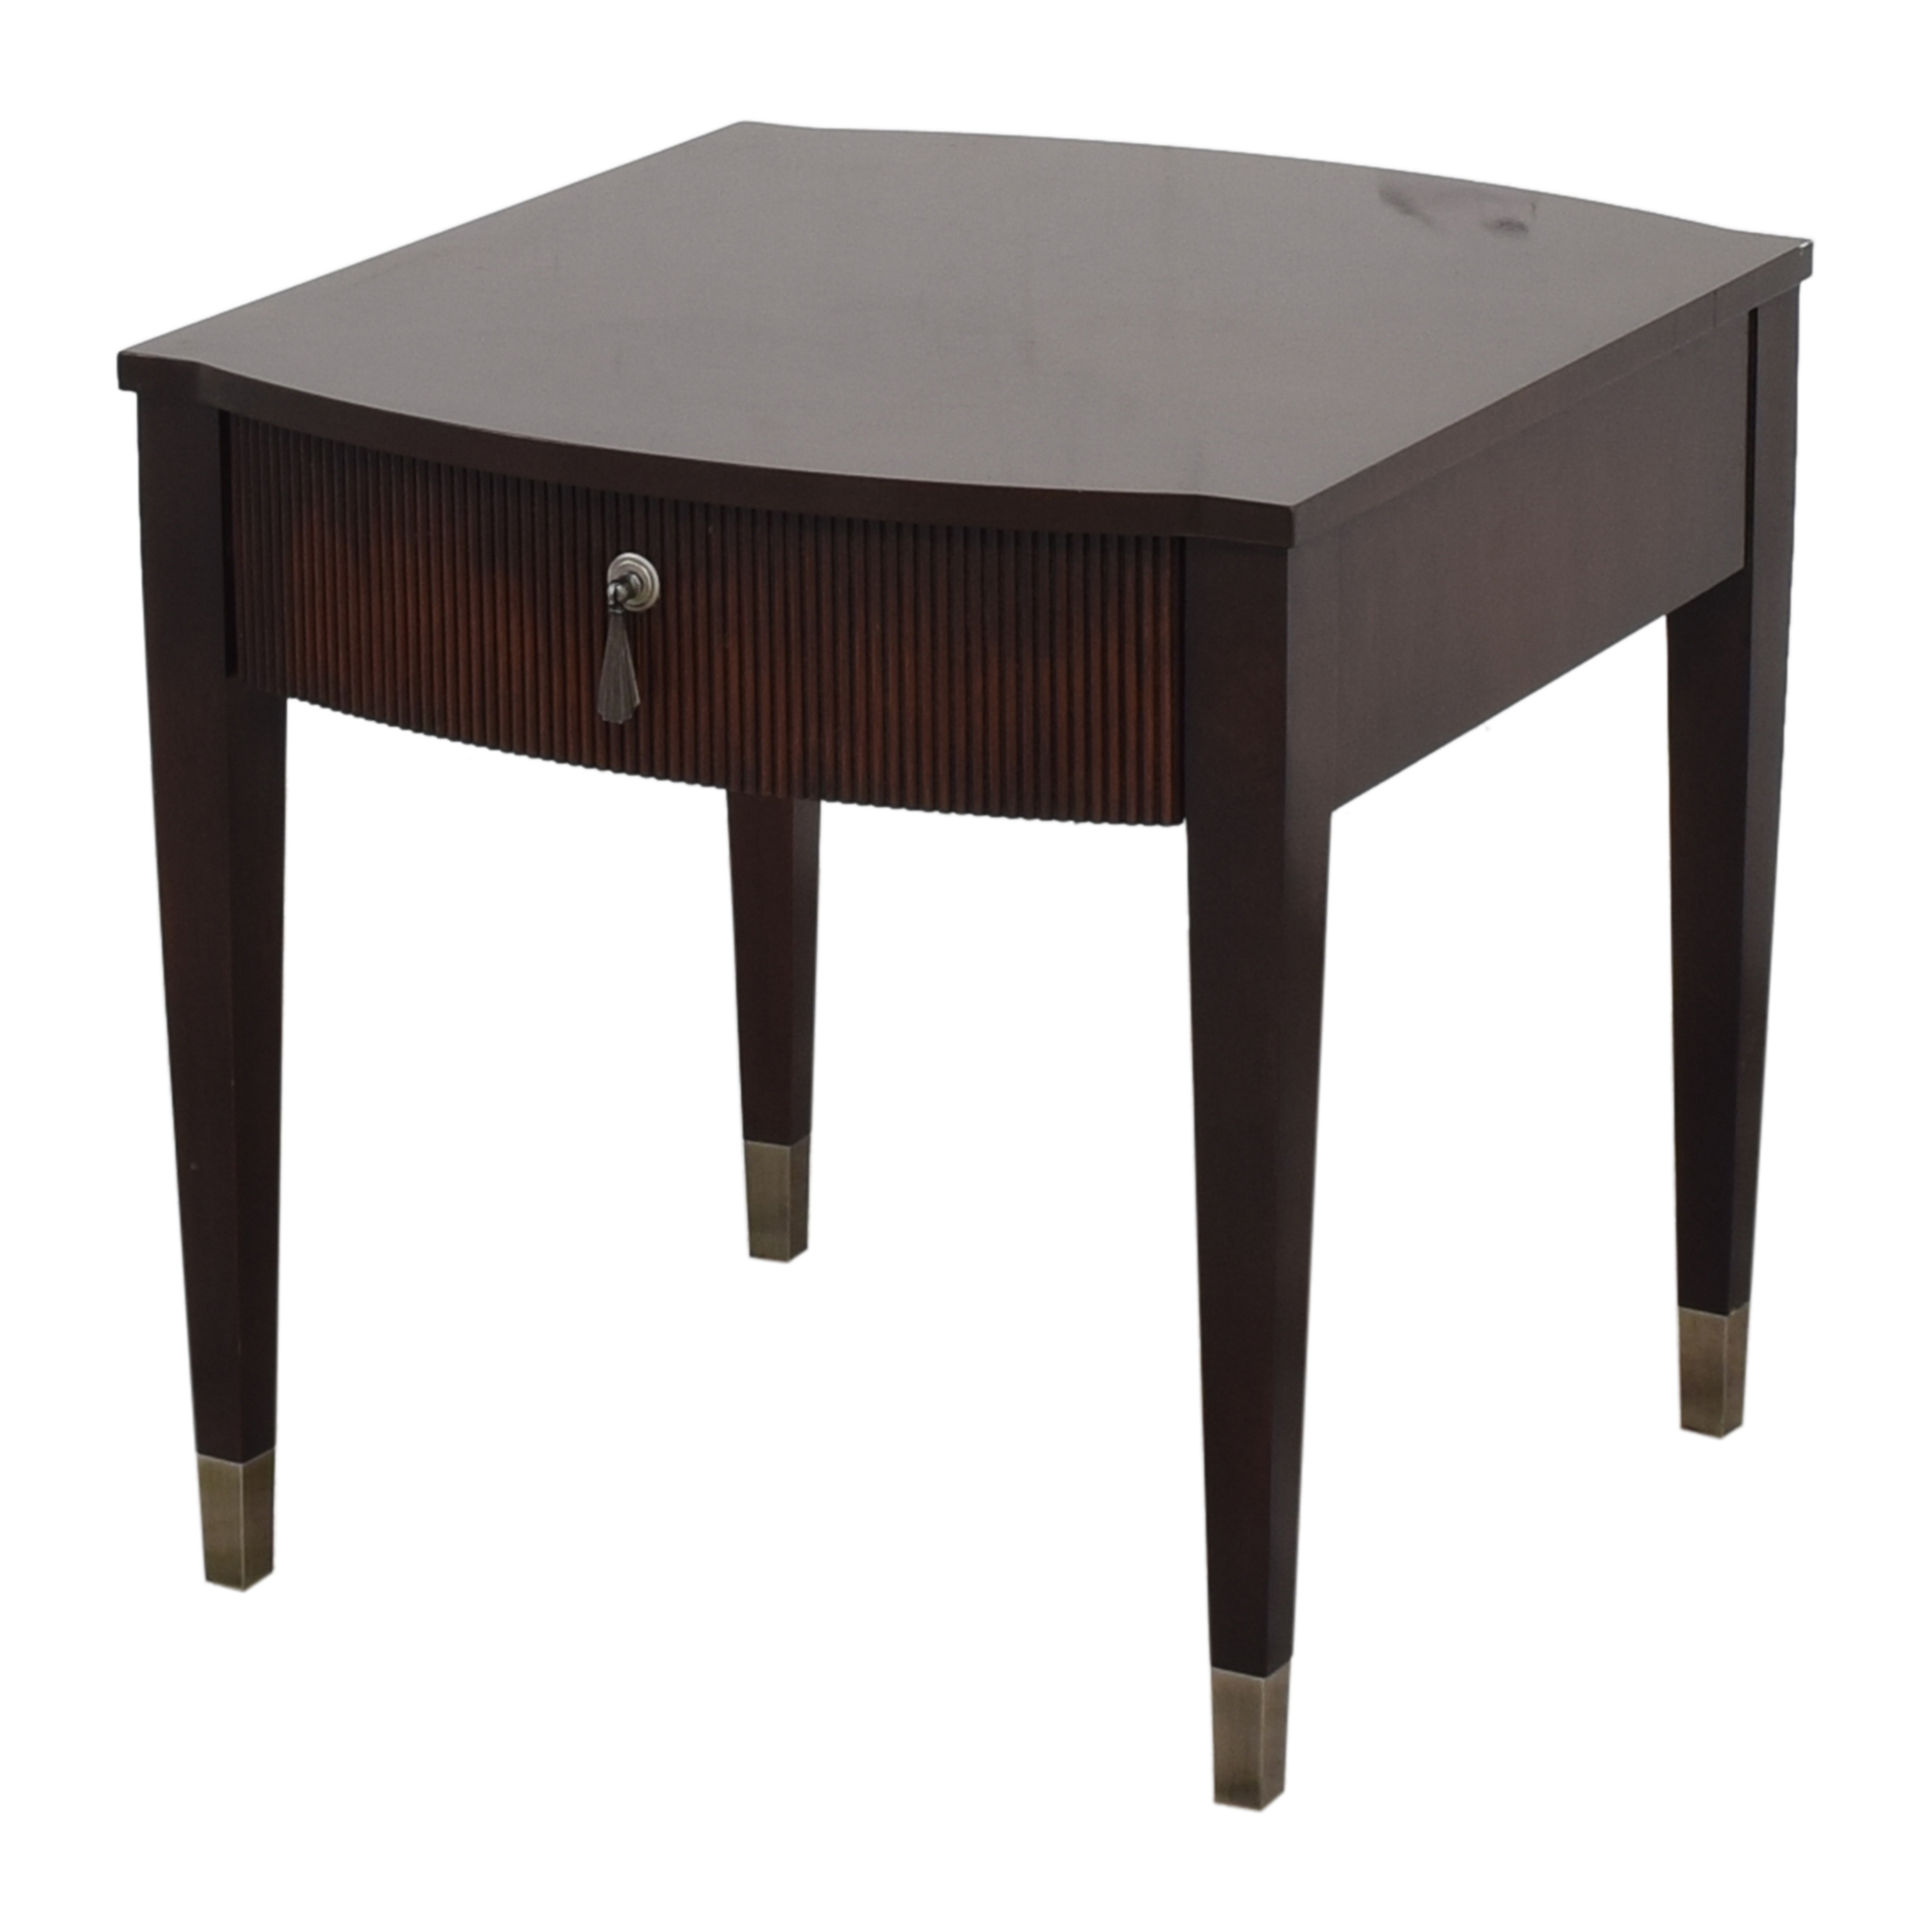 Ethan Allen Ethan Allen Avenue End Table coupon